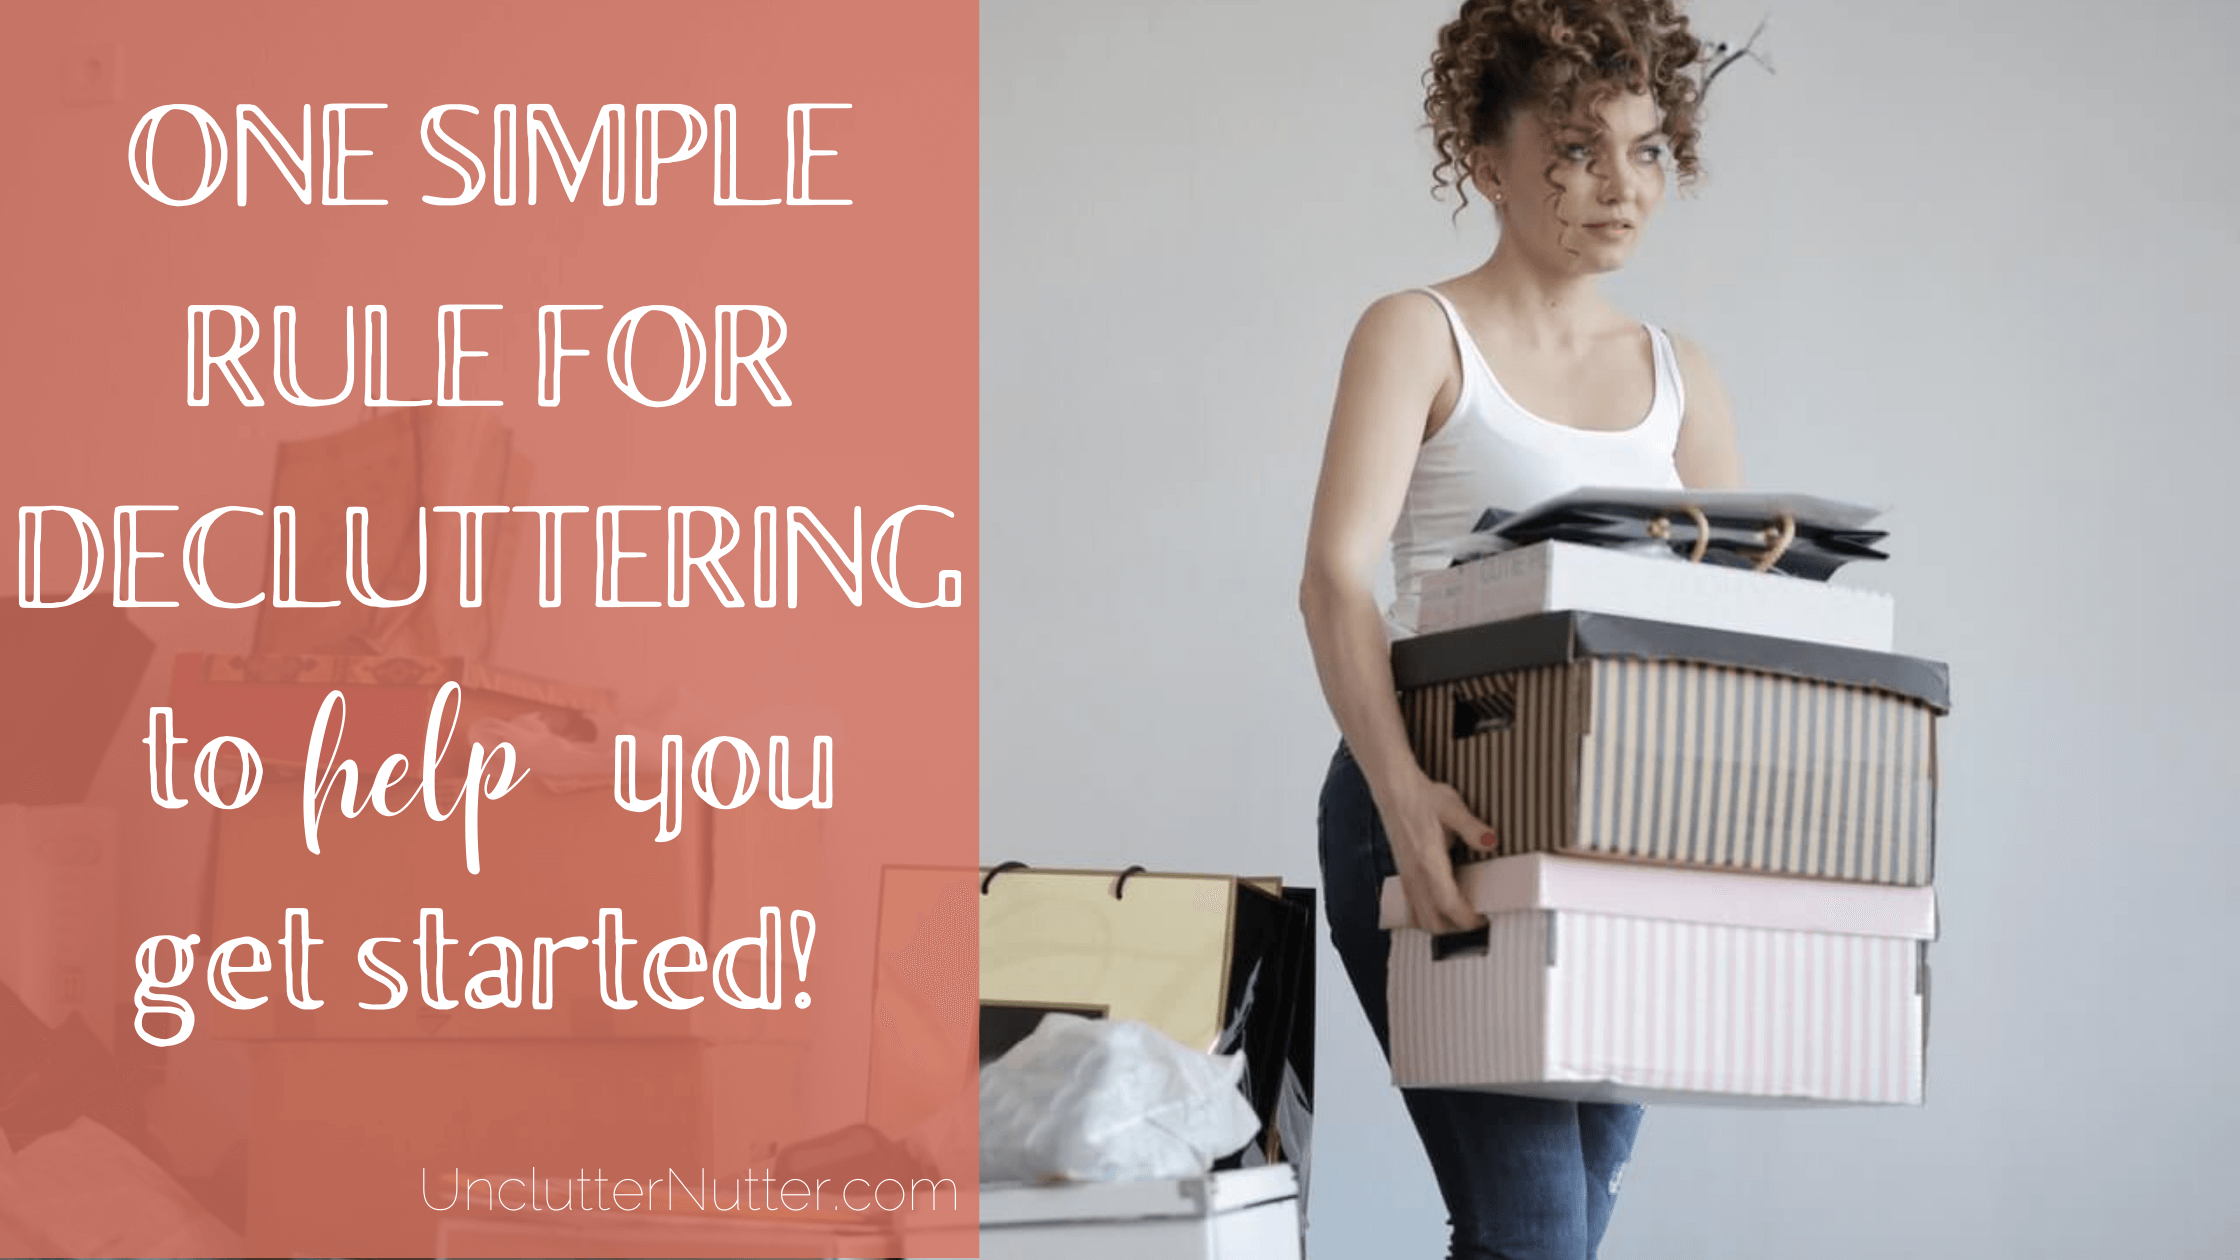 woman surrounded by clutter, carrying boxes while decluttering